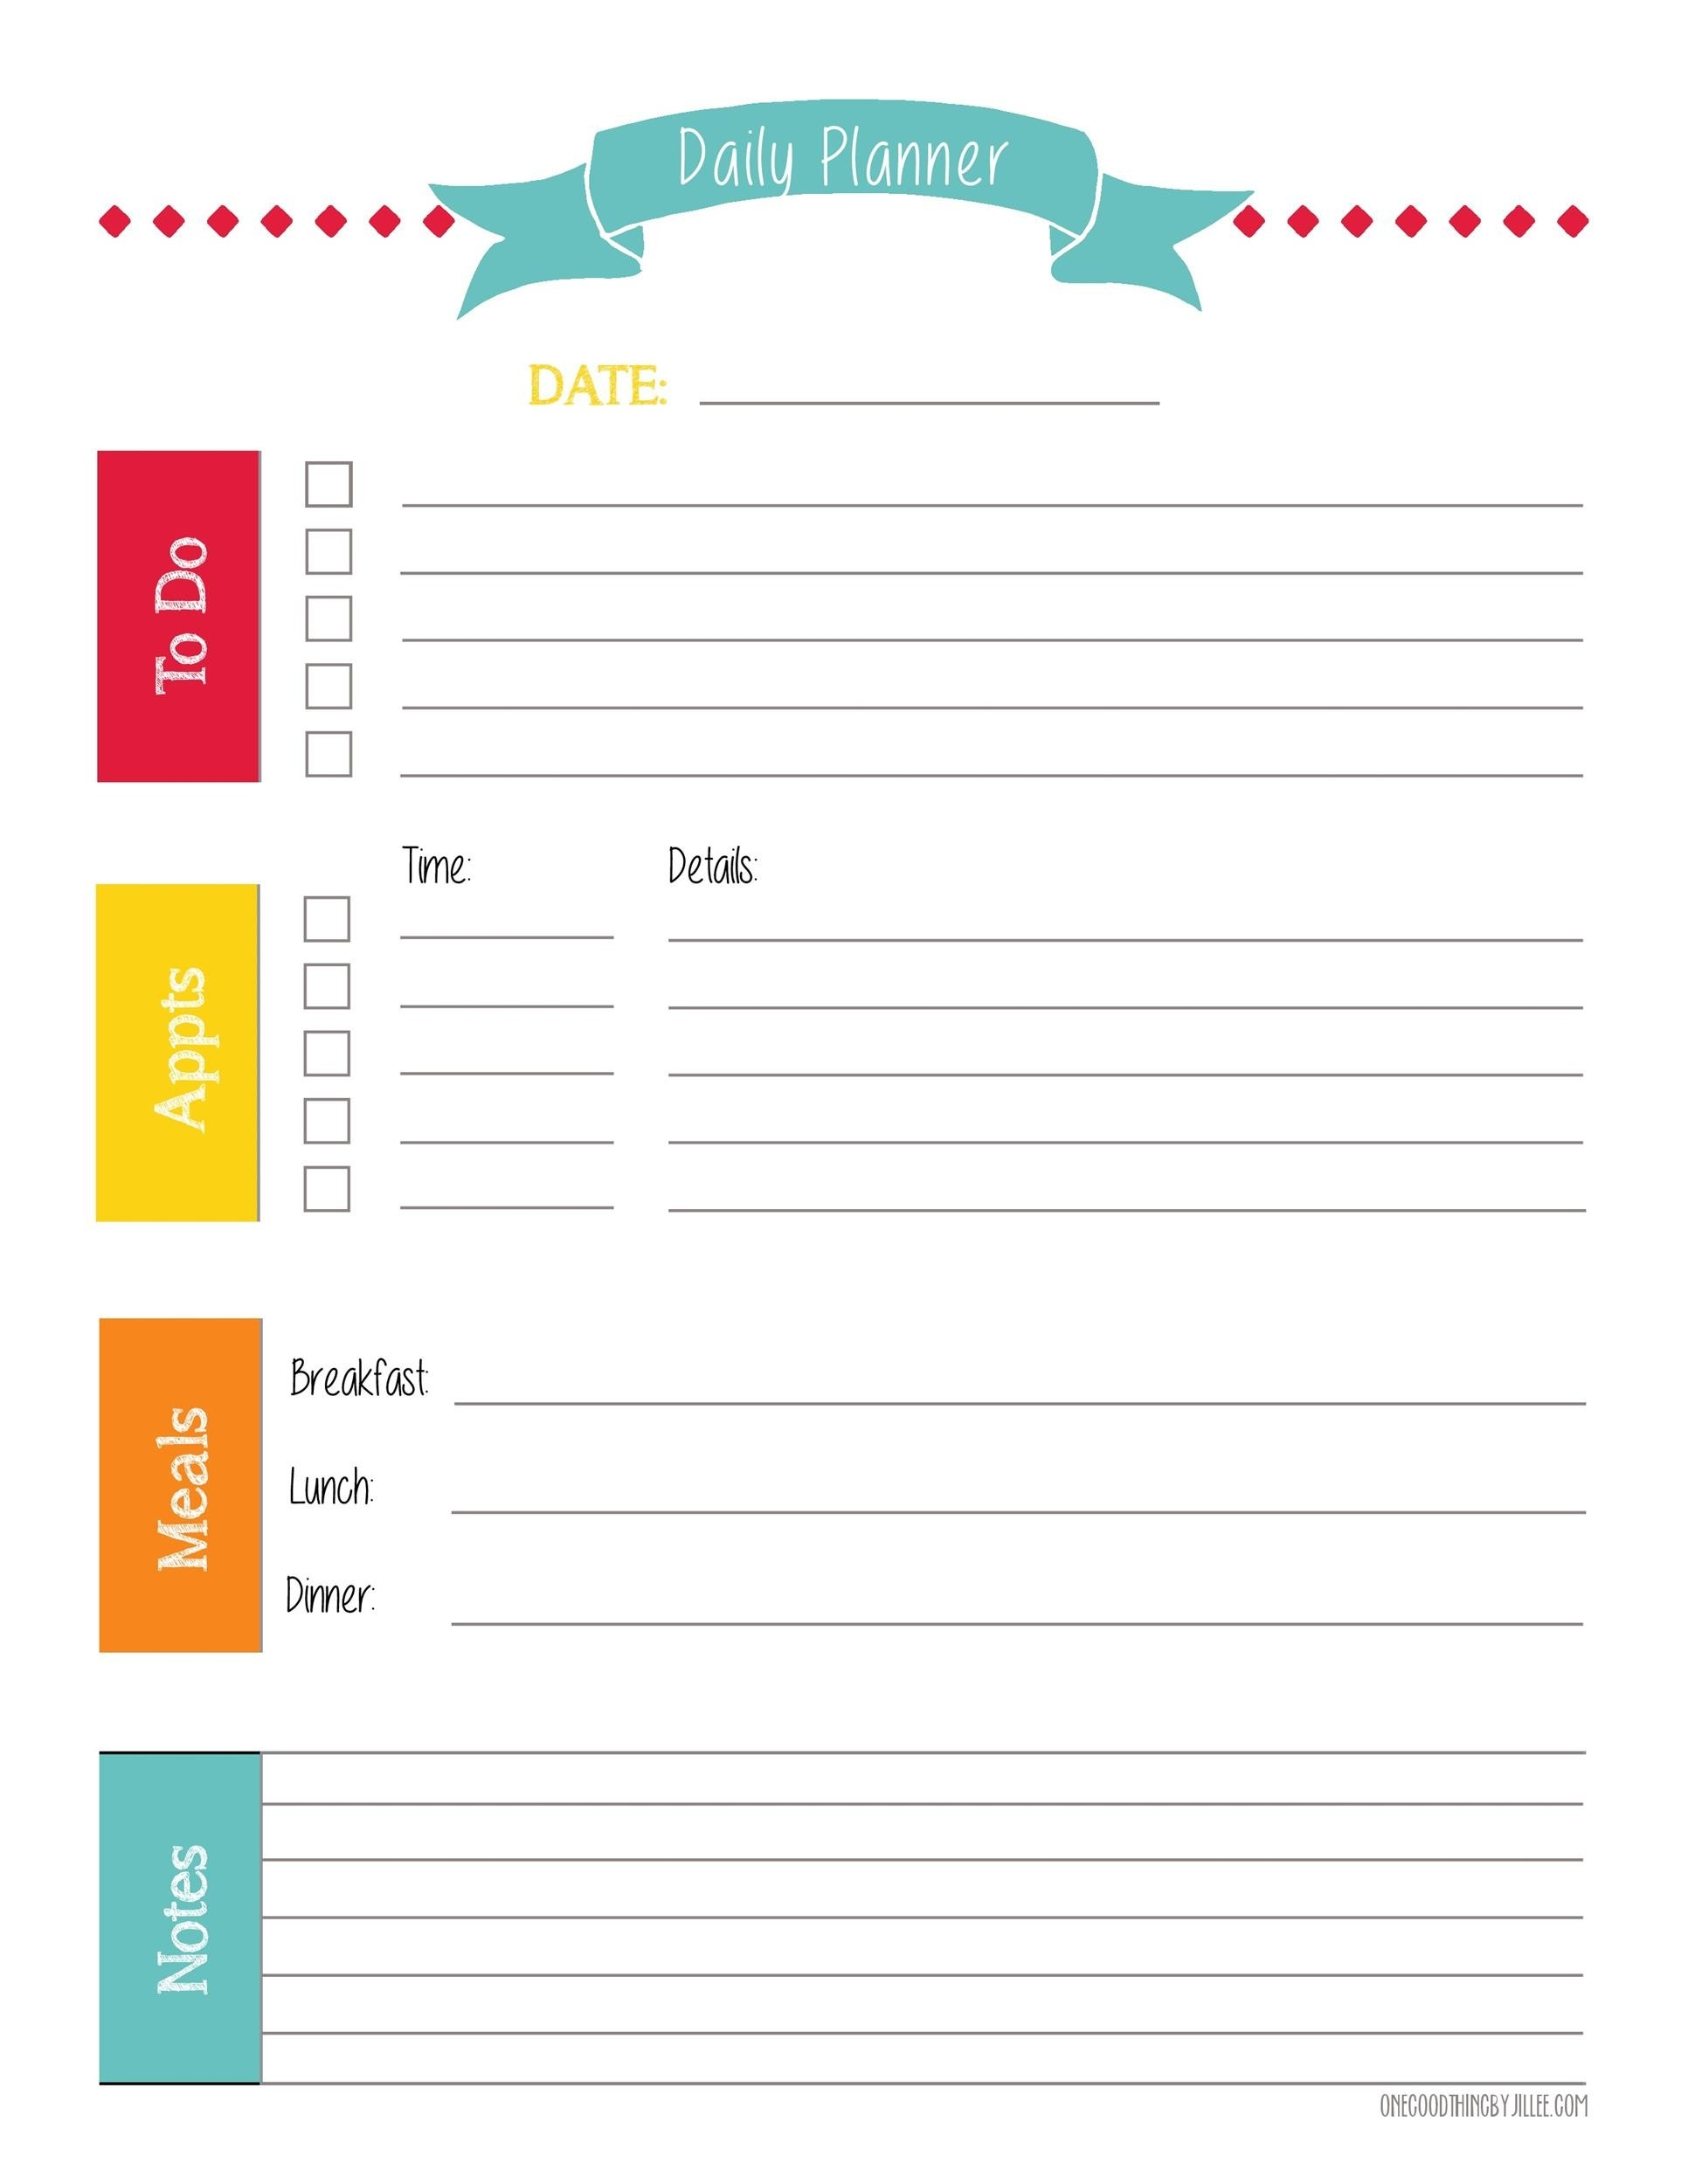 47 Printable Daily Planner Templates (Free In Word/Excel/Pdf)  Free Printable Daily Time Management Templates